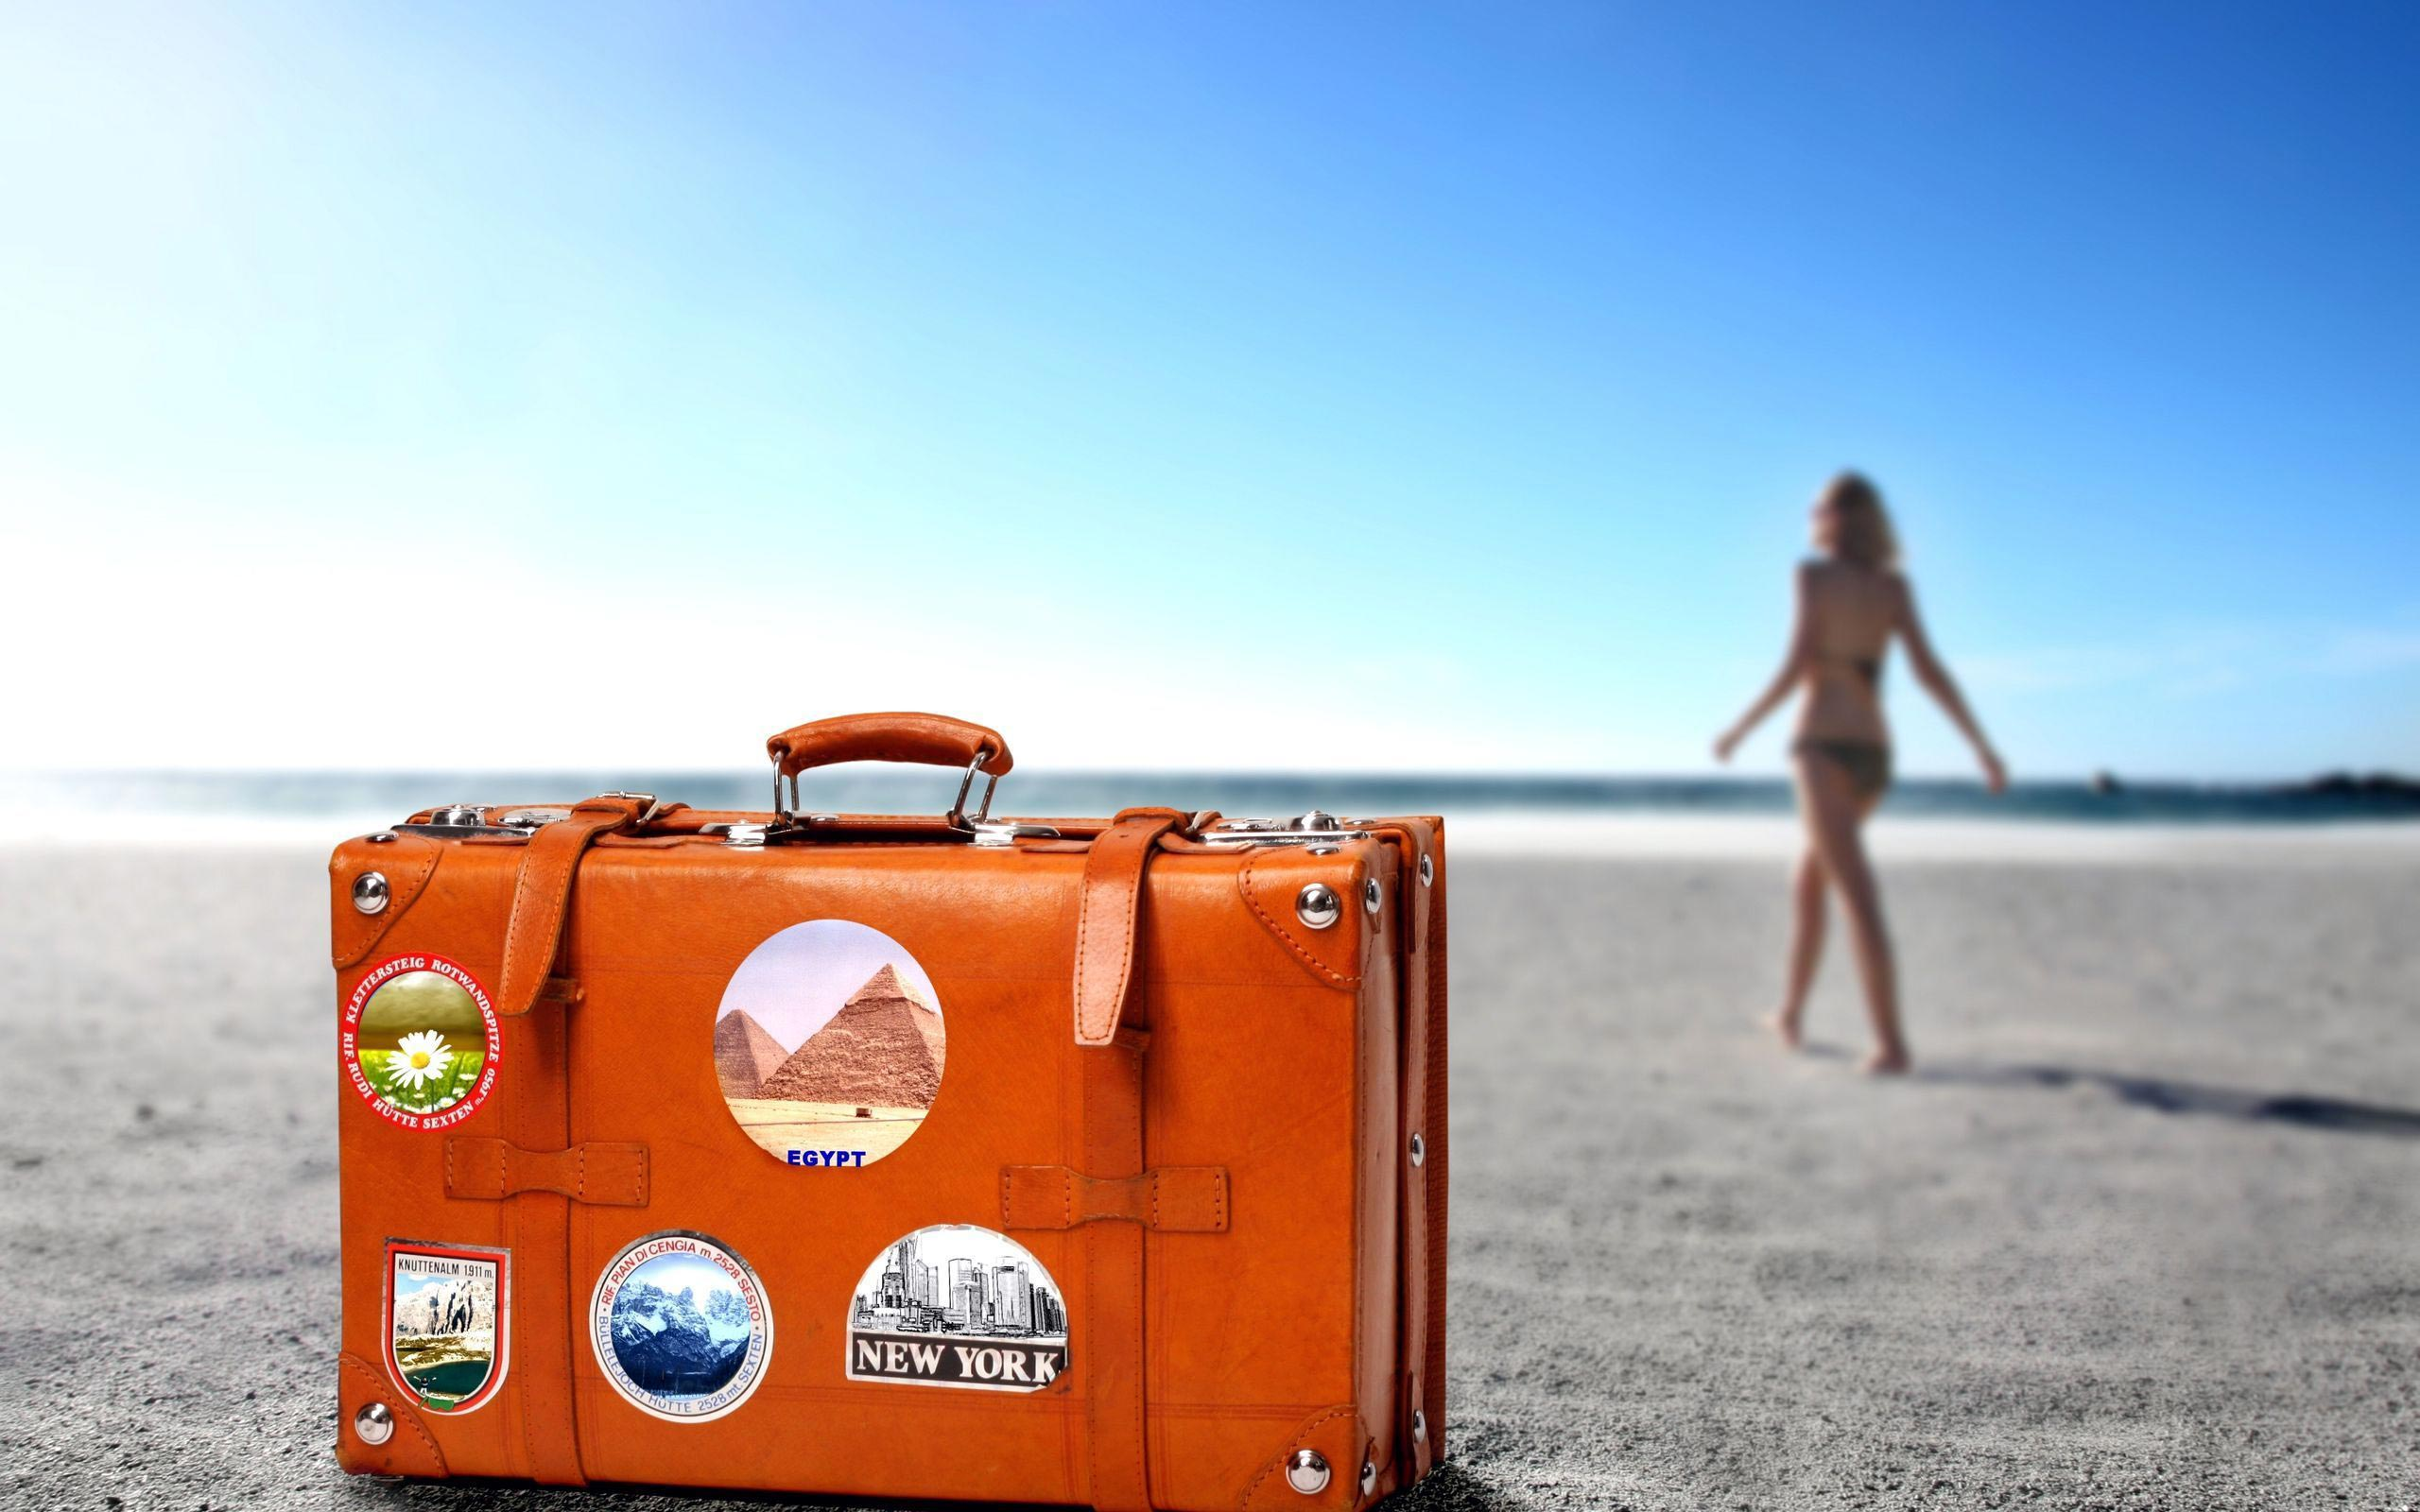 travel-beach-bikini-travel-suitcase-sea-sun-holiday1.jpg